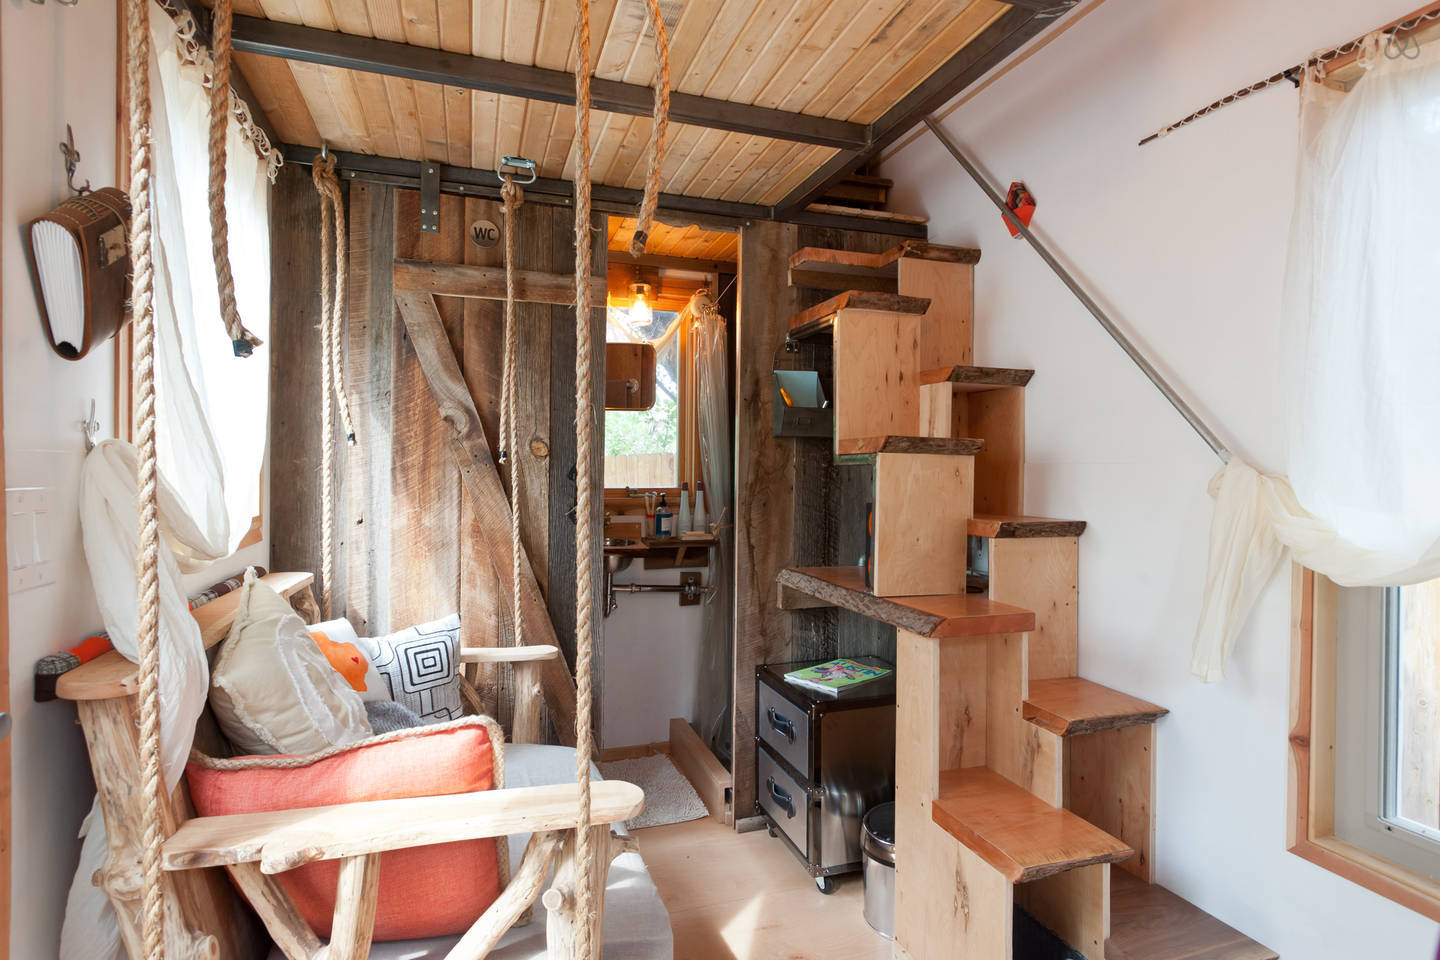 Images Via Tiny House Living · Hip East Side Tiny Pad Interior Photo Gallery